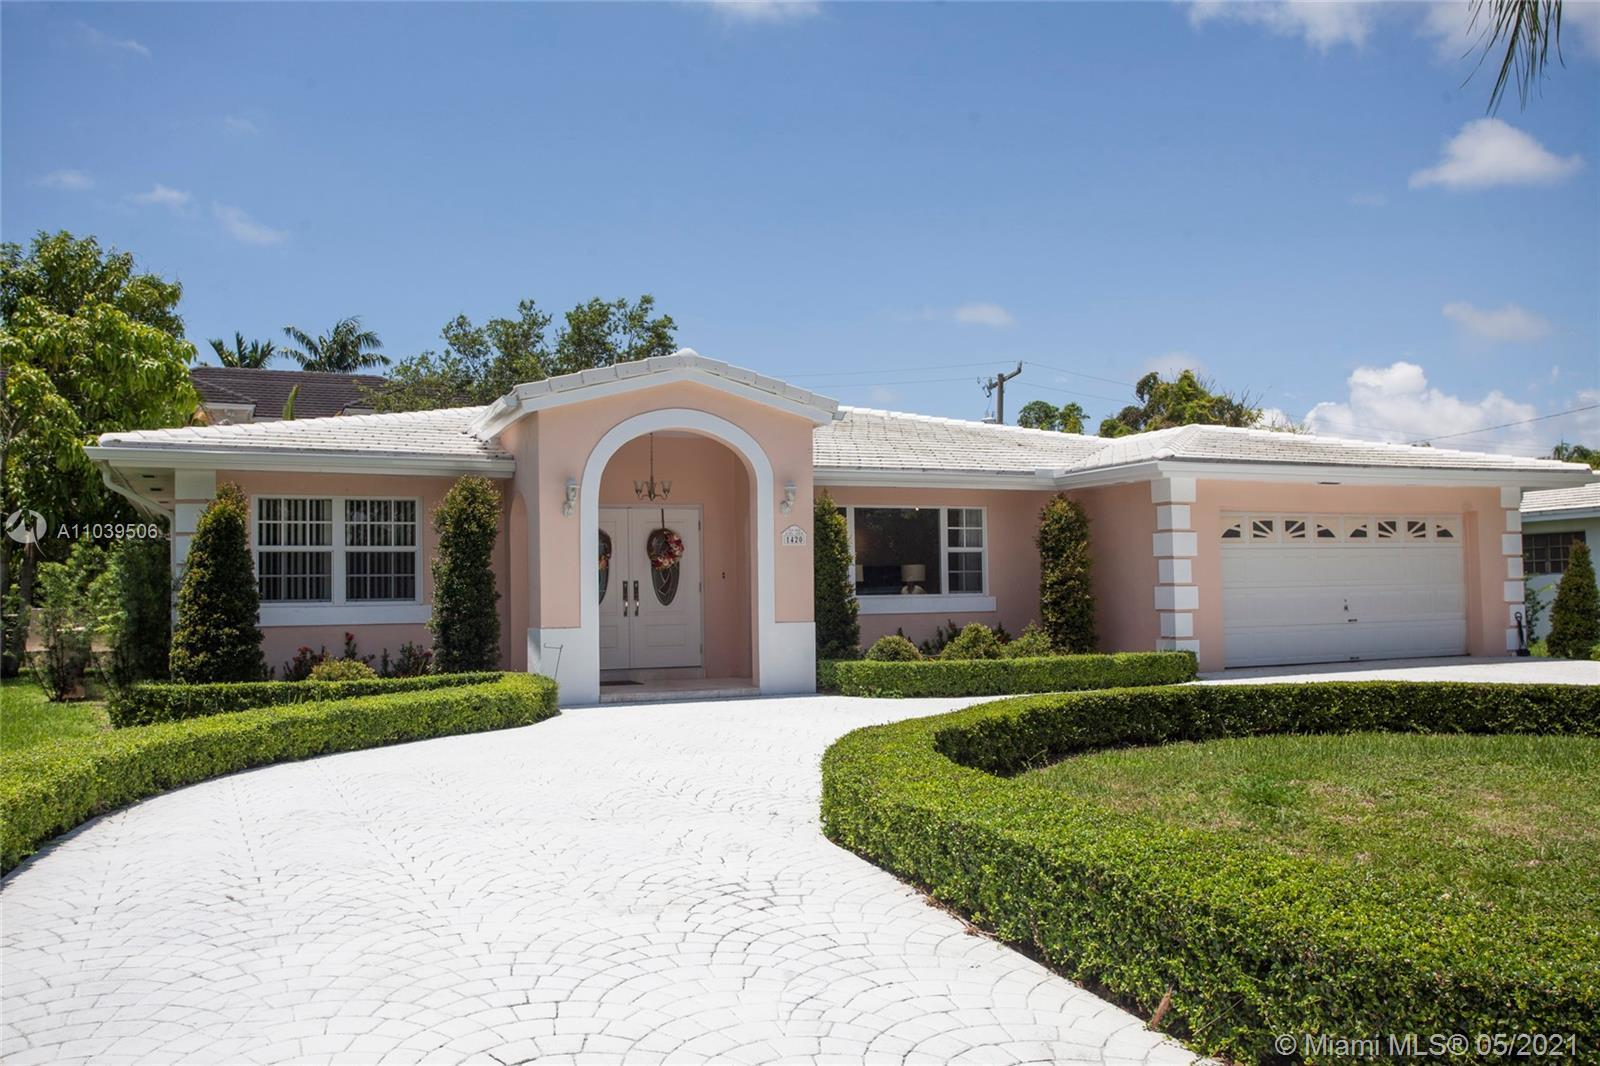 DON'T MISS THIS OPPORTUNITY TO LIVE IN EXCLUSIVE GATED/SECURE - GABLES-BY-THE-SEA COMMUNITY! PINECRE